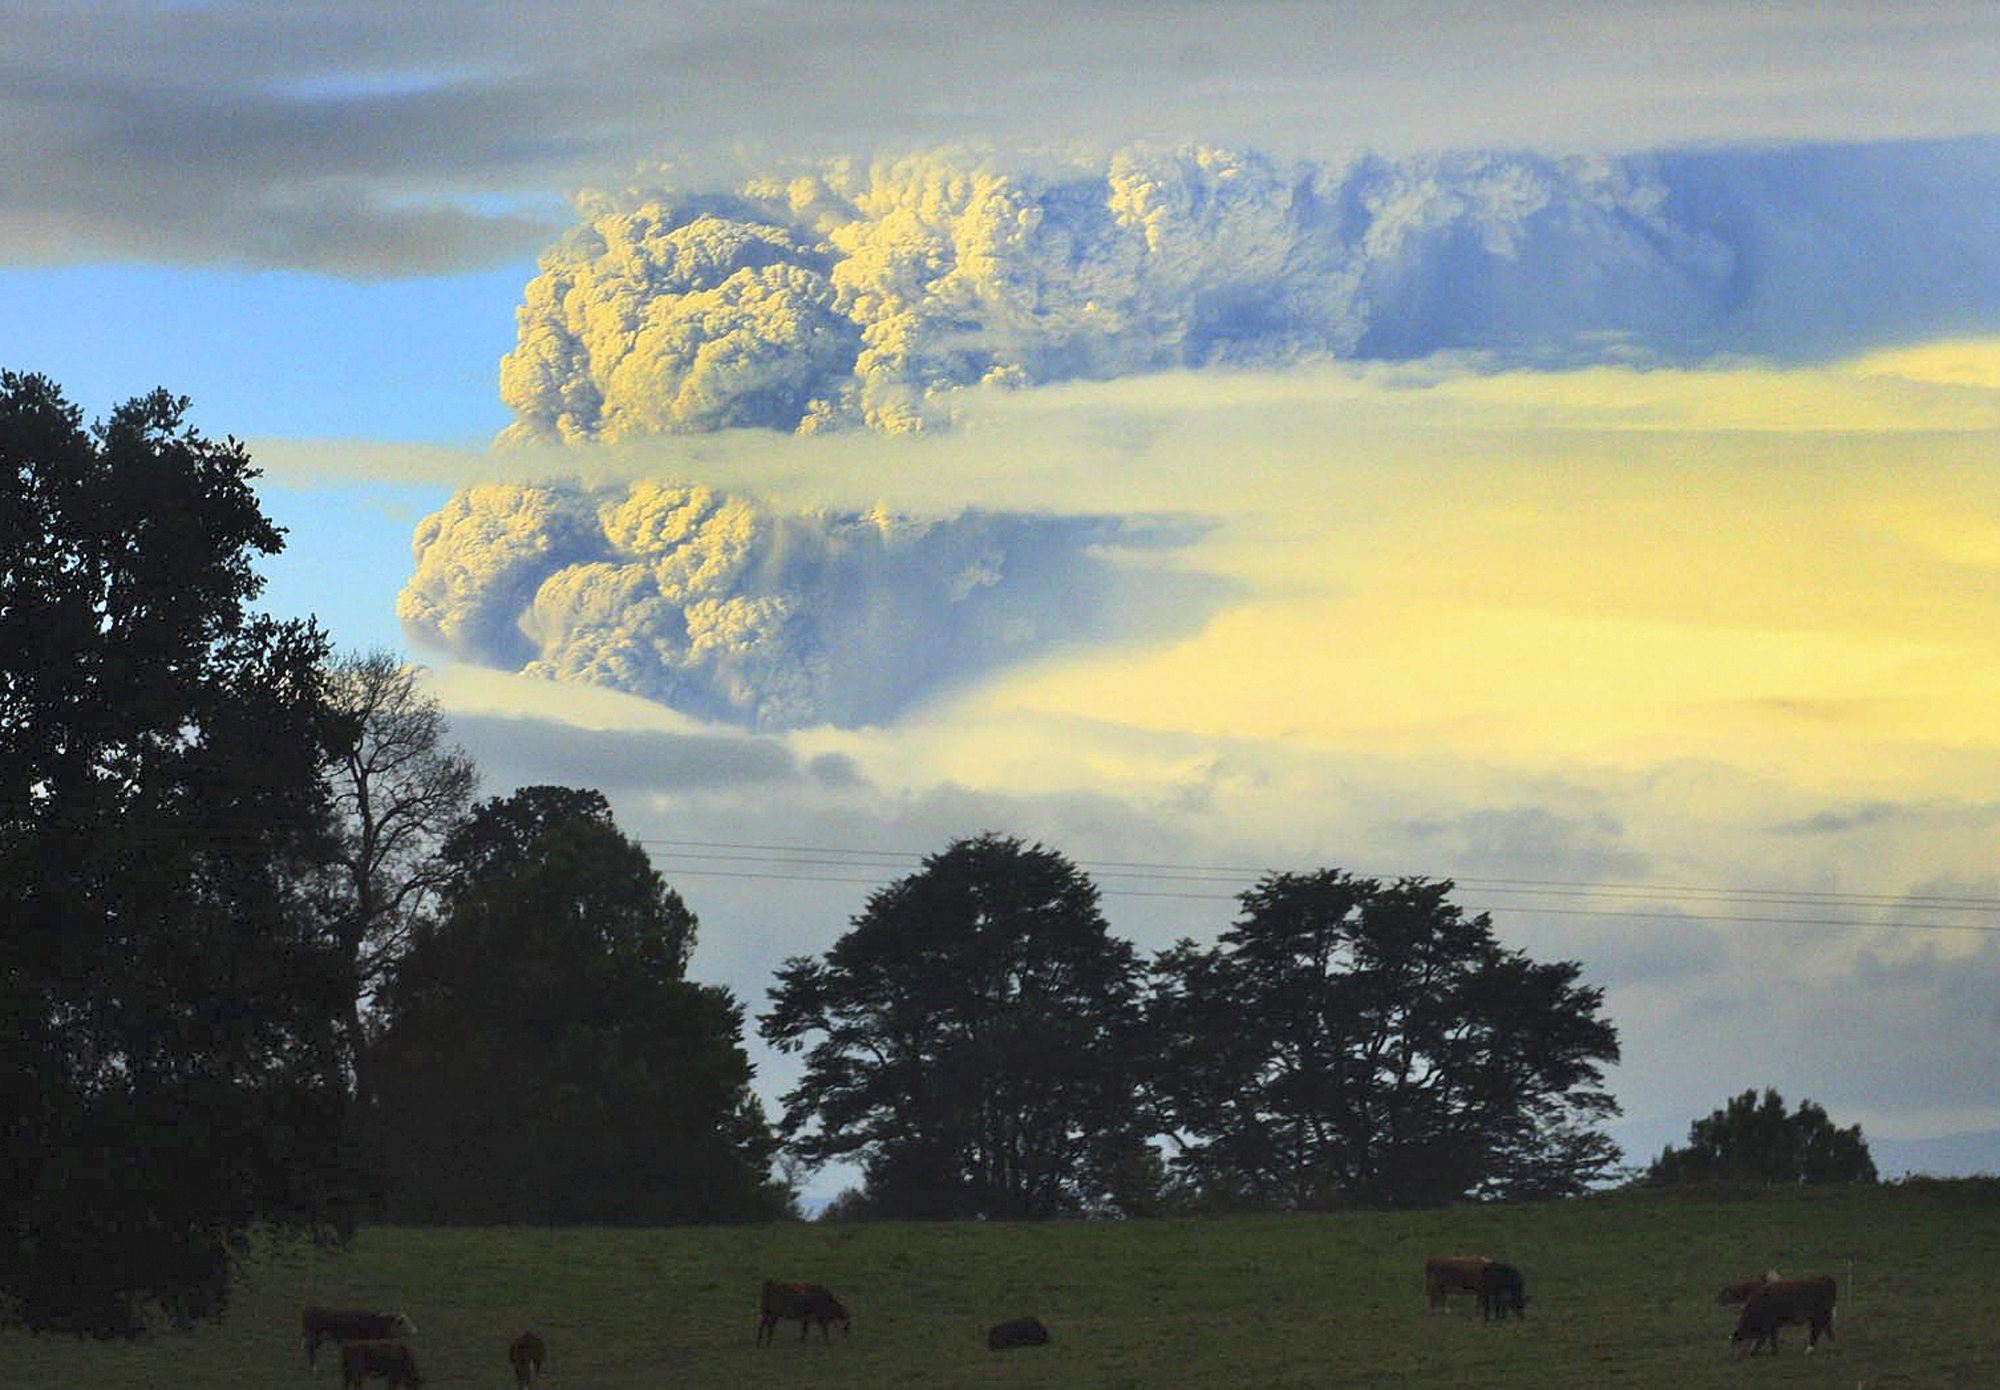 A column of smoke and ashes comes out from the Puyehue volcano, some 1,100 kilometers south of Santiago, Chile, Saturday, June 4, 2011. Authorities have evacuated about 600 people living nearby the volcano. There have been no reports of injuries.